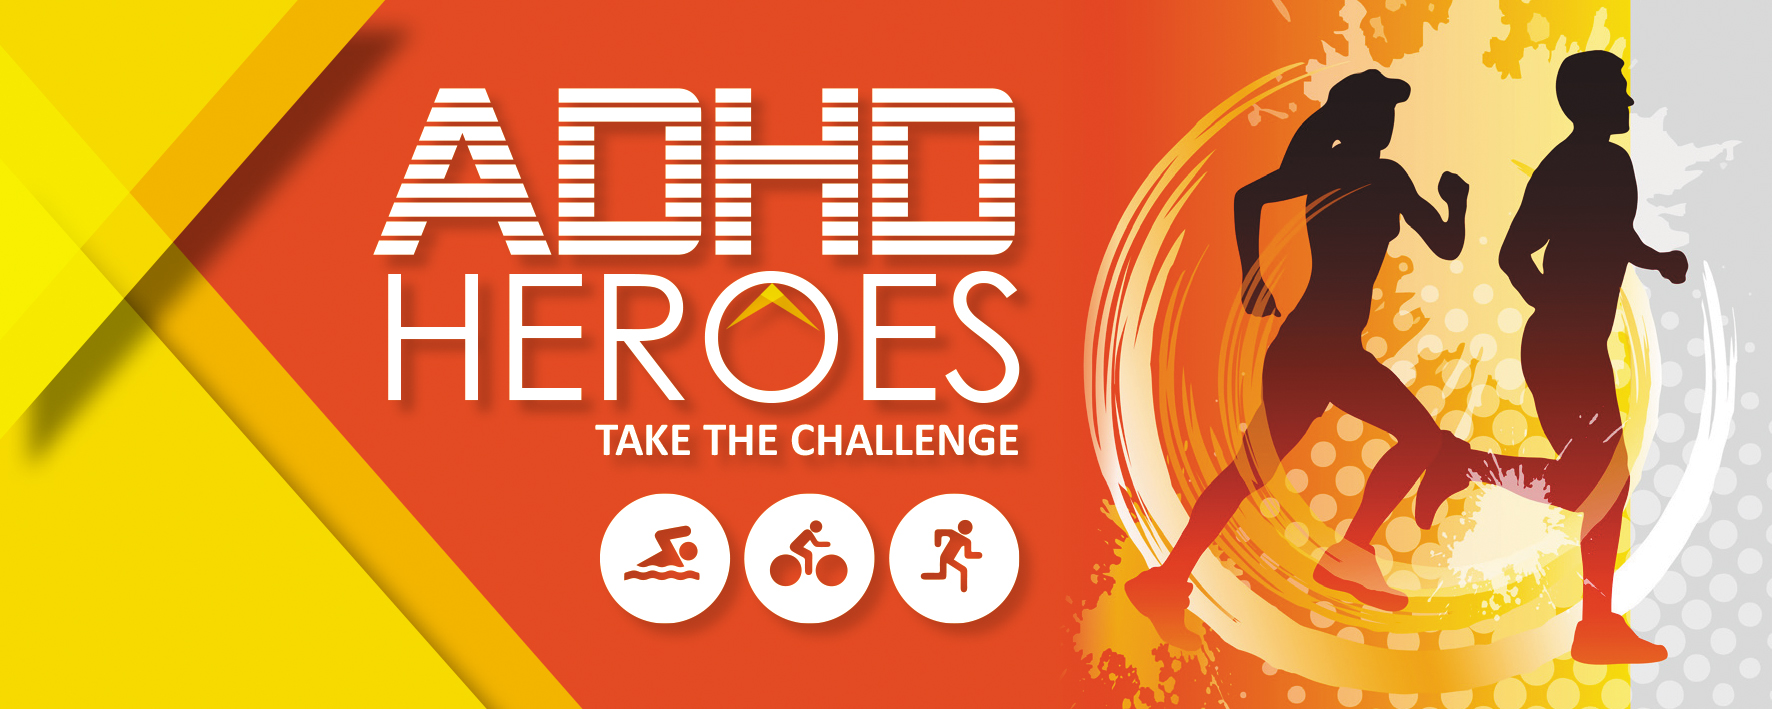 ADHD Heroes in City2Surf